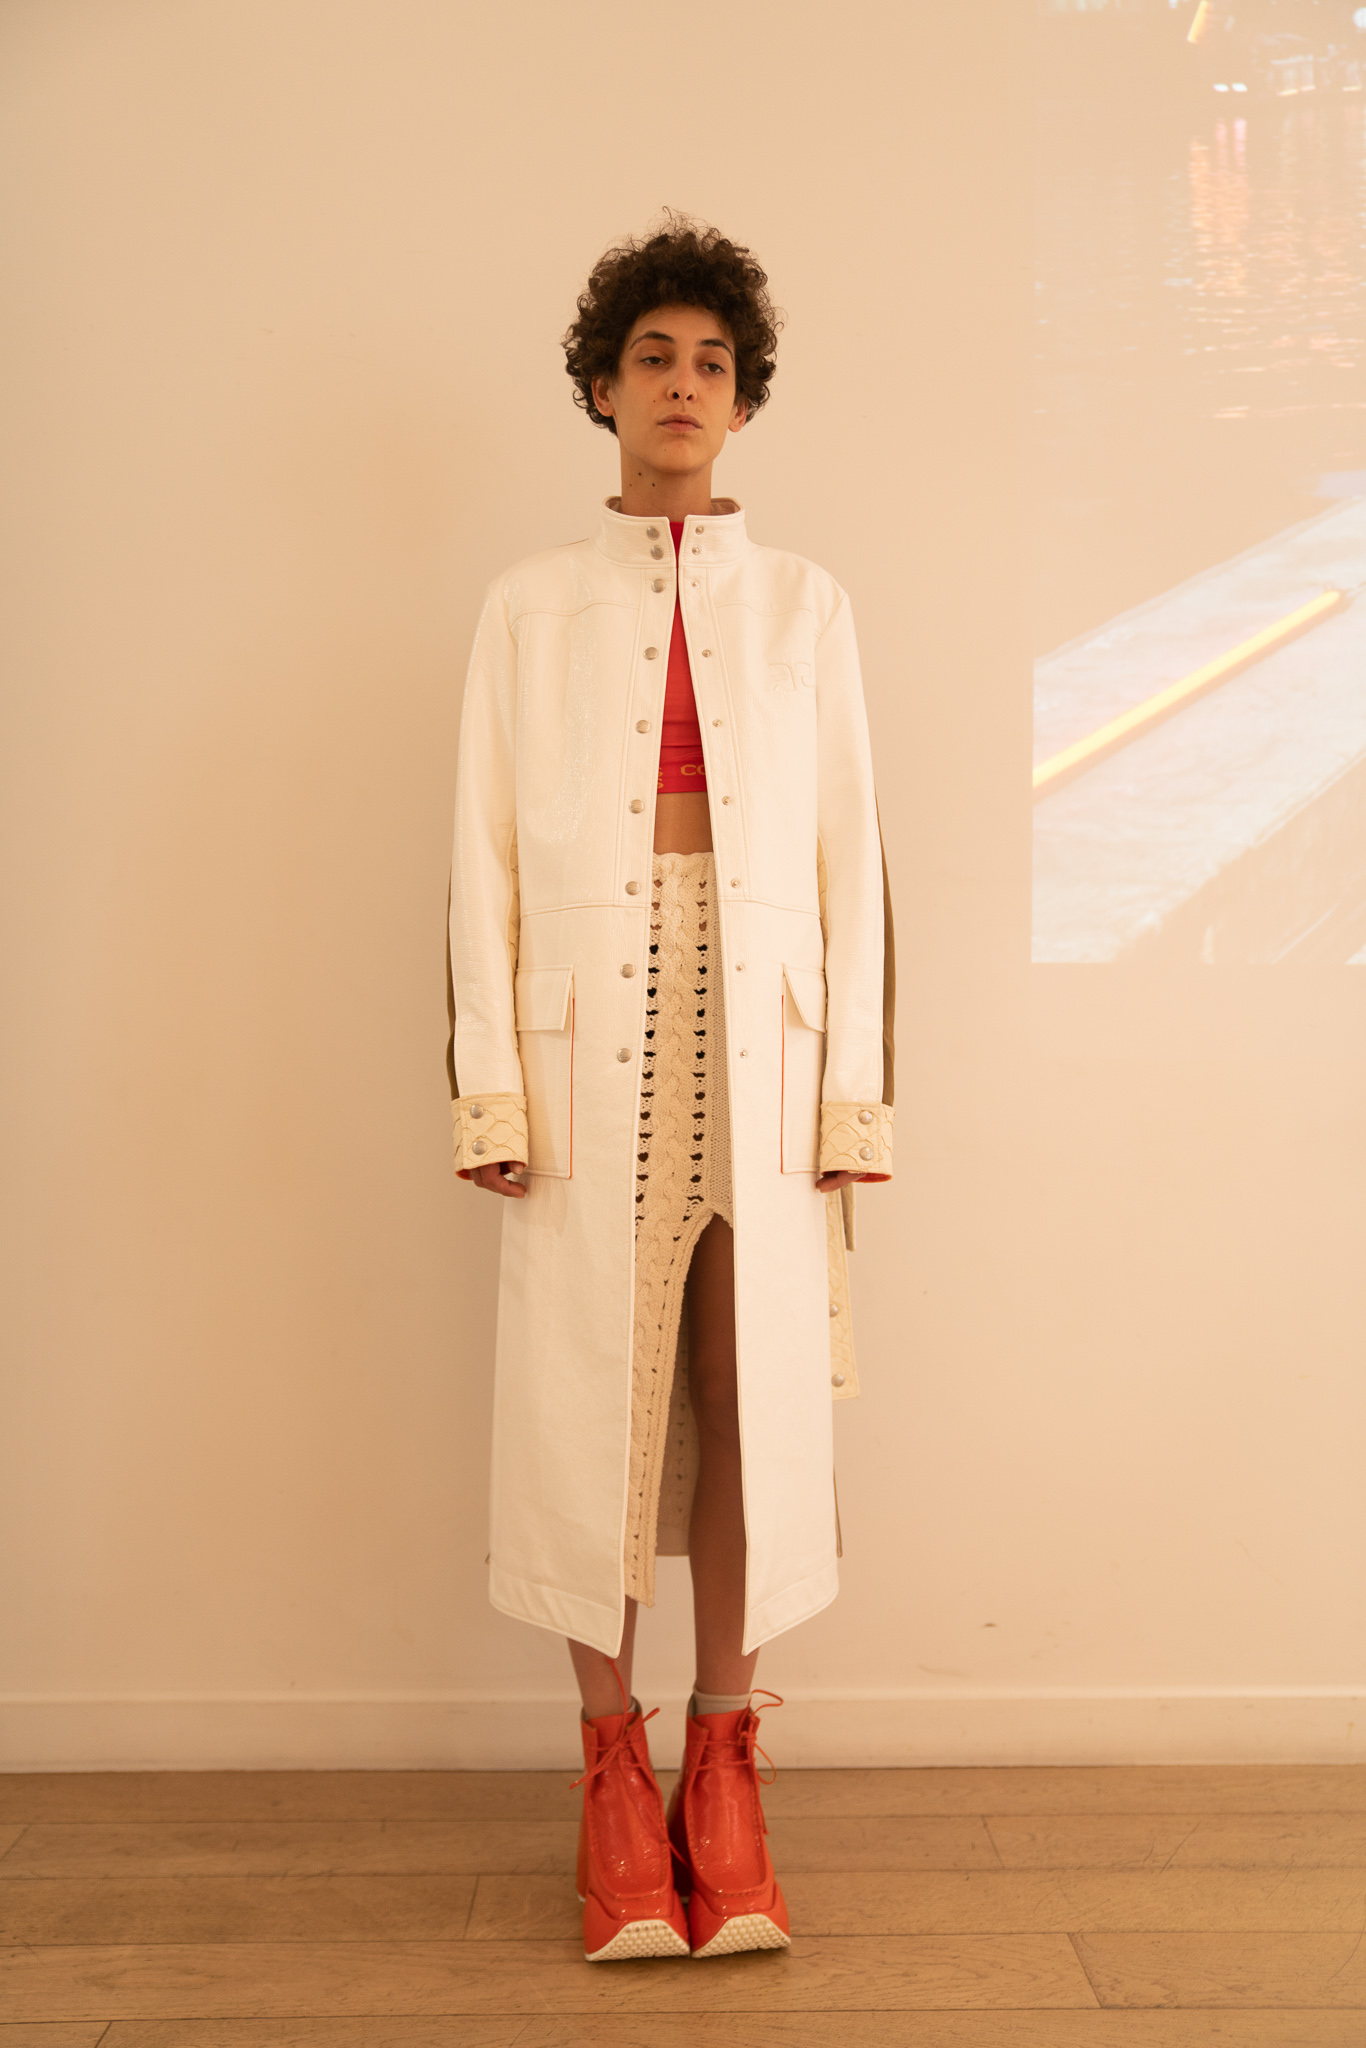 Courreges High Collared Coat in White Crop Top in Pink Slit Skirt in Yellow Platform Shoes in Pink SS20